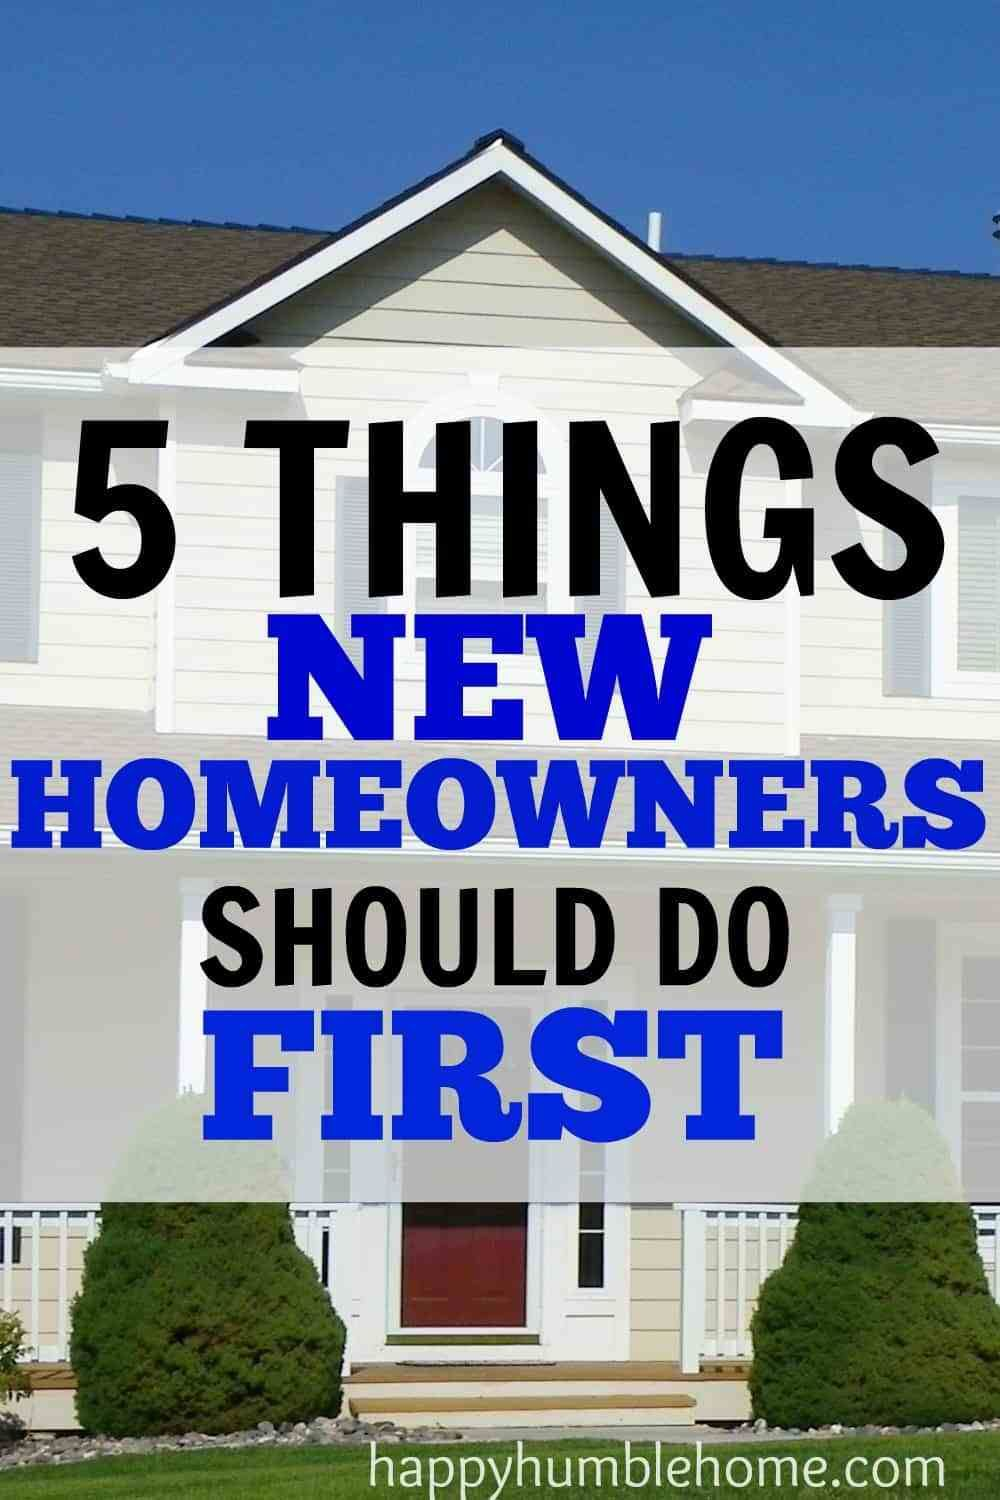 5 Things New Homeowners Should Do First